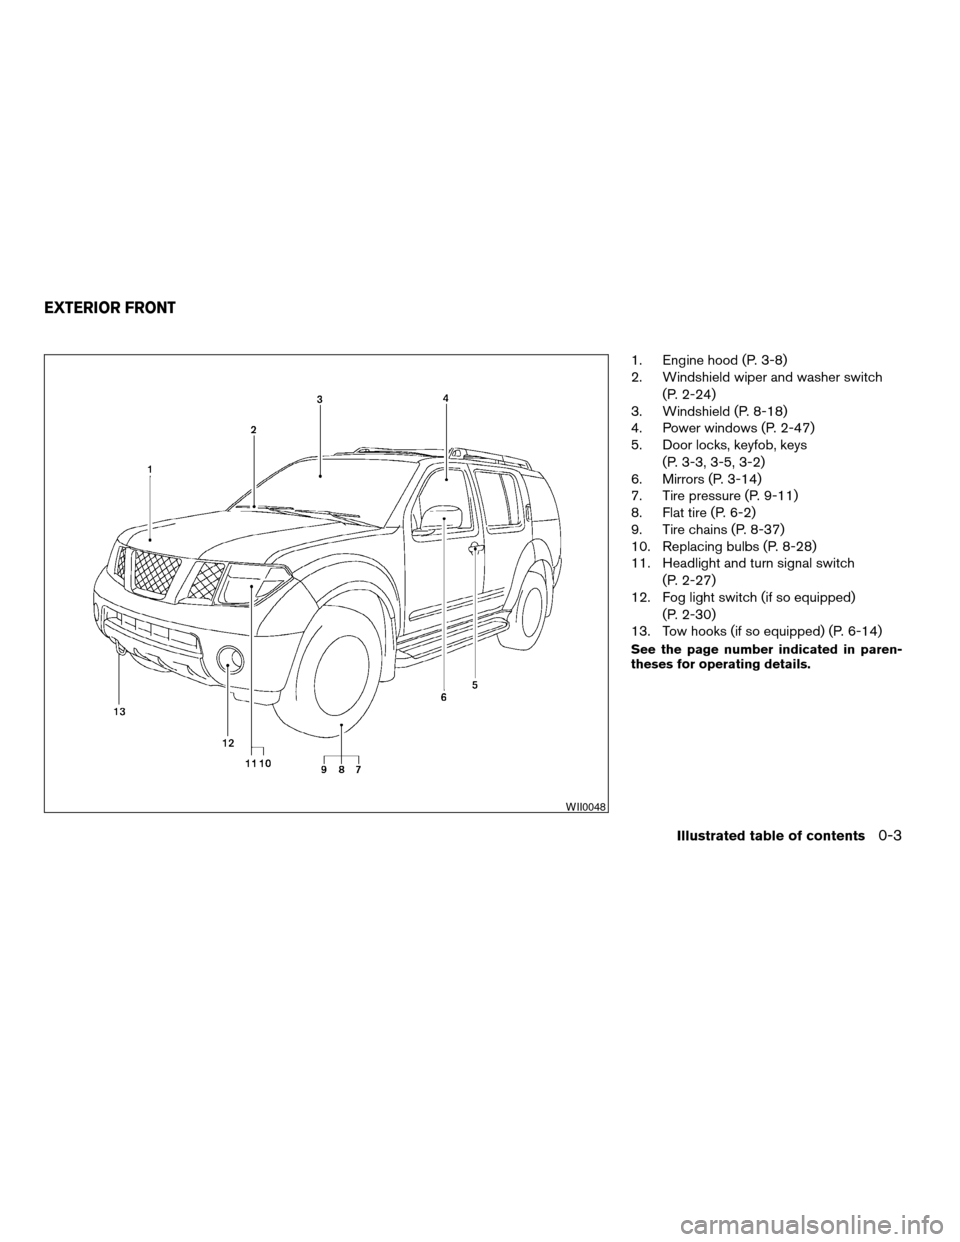 NISSAN PATHFINDER 2007 R51 / 3.G Owners Manual